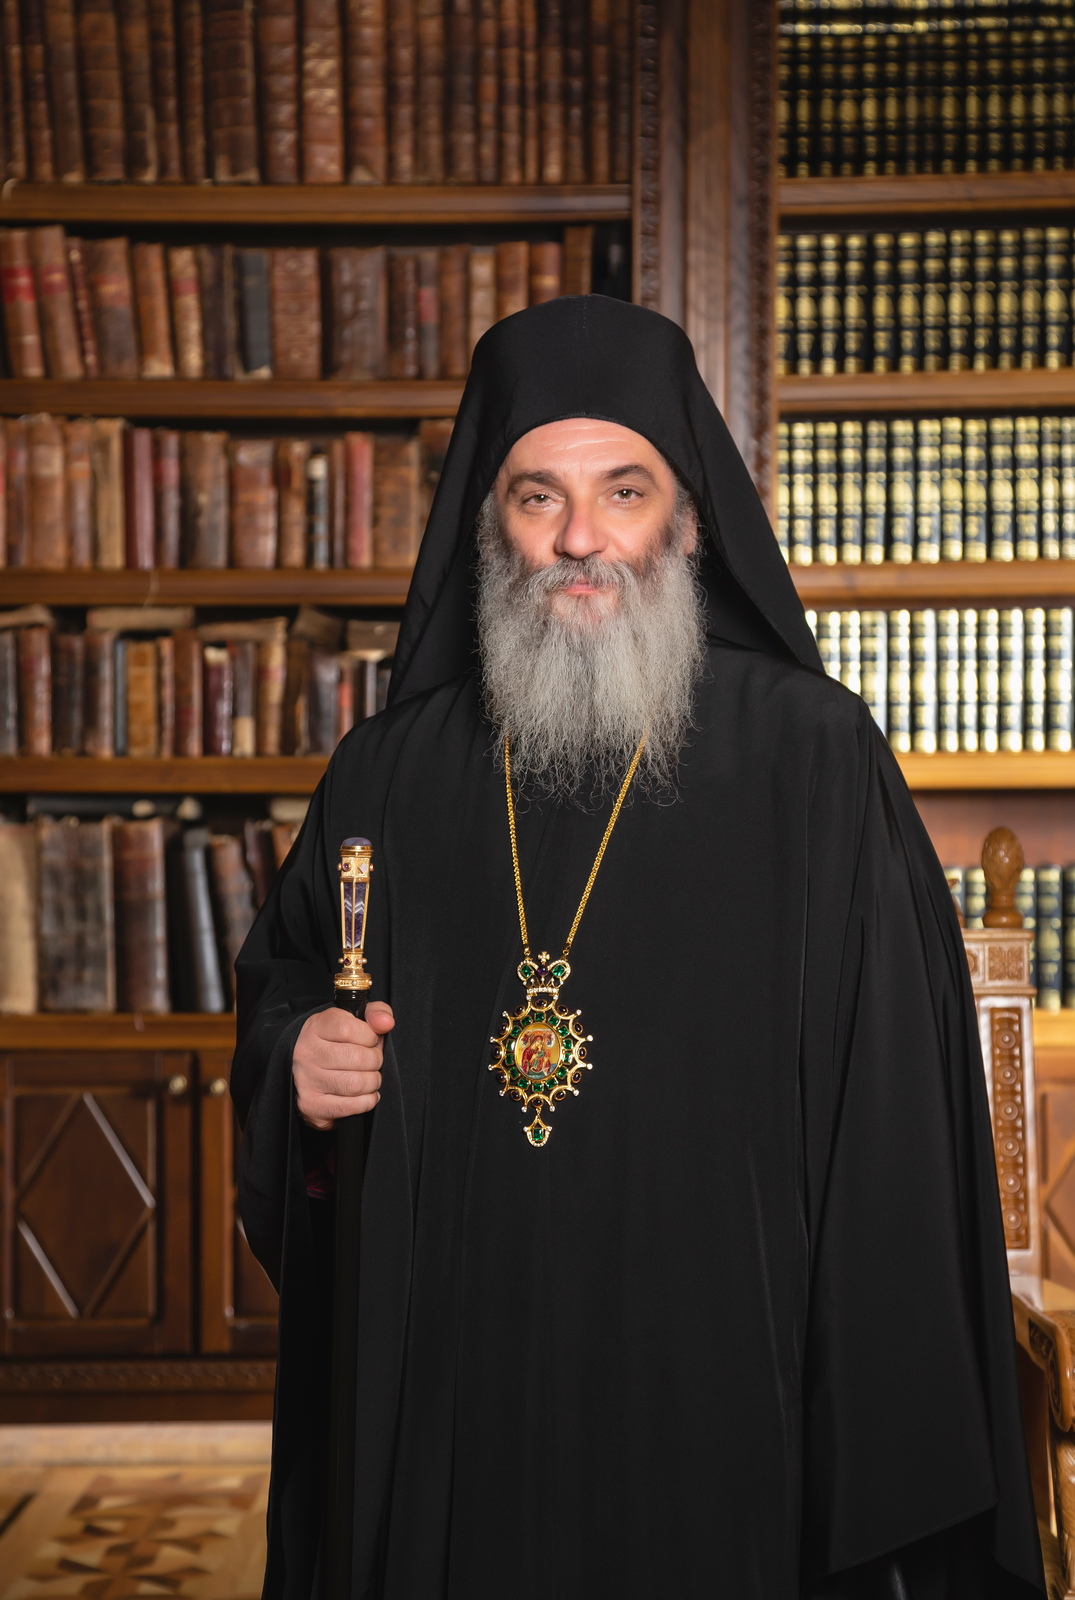 Bishop Parthenius, Elder and Abbot of the Bigorski Monastery